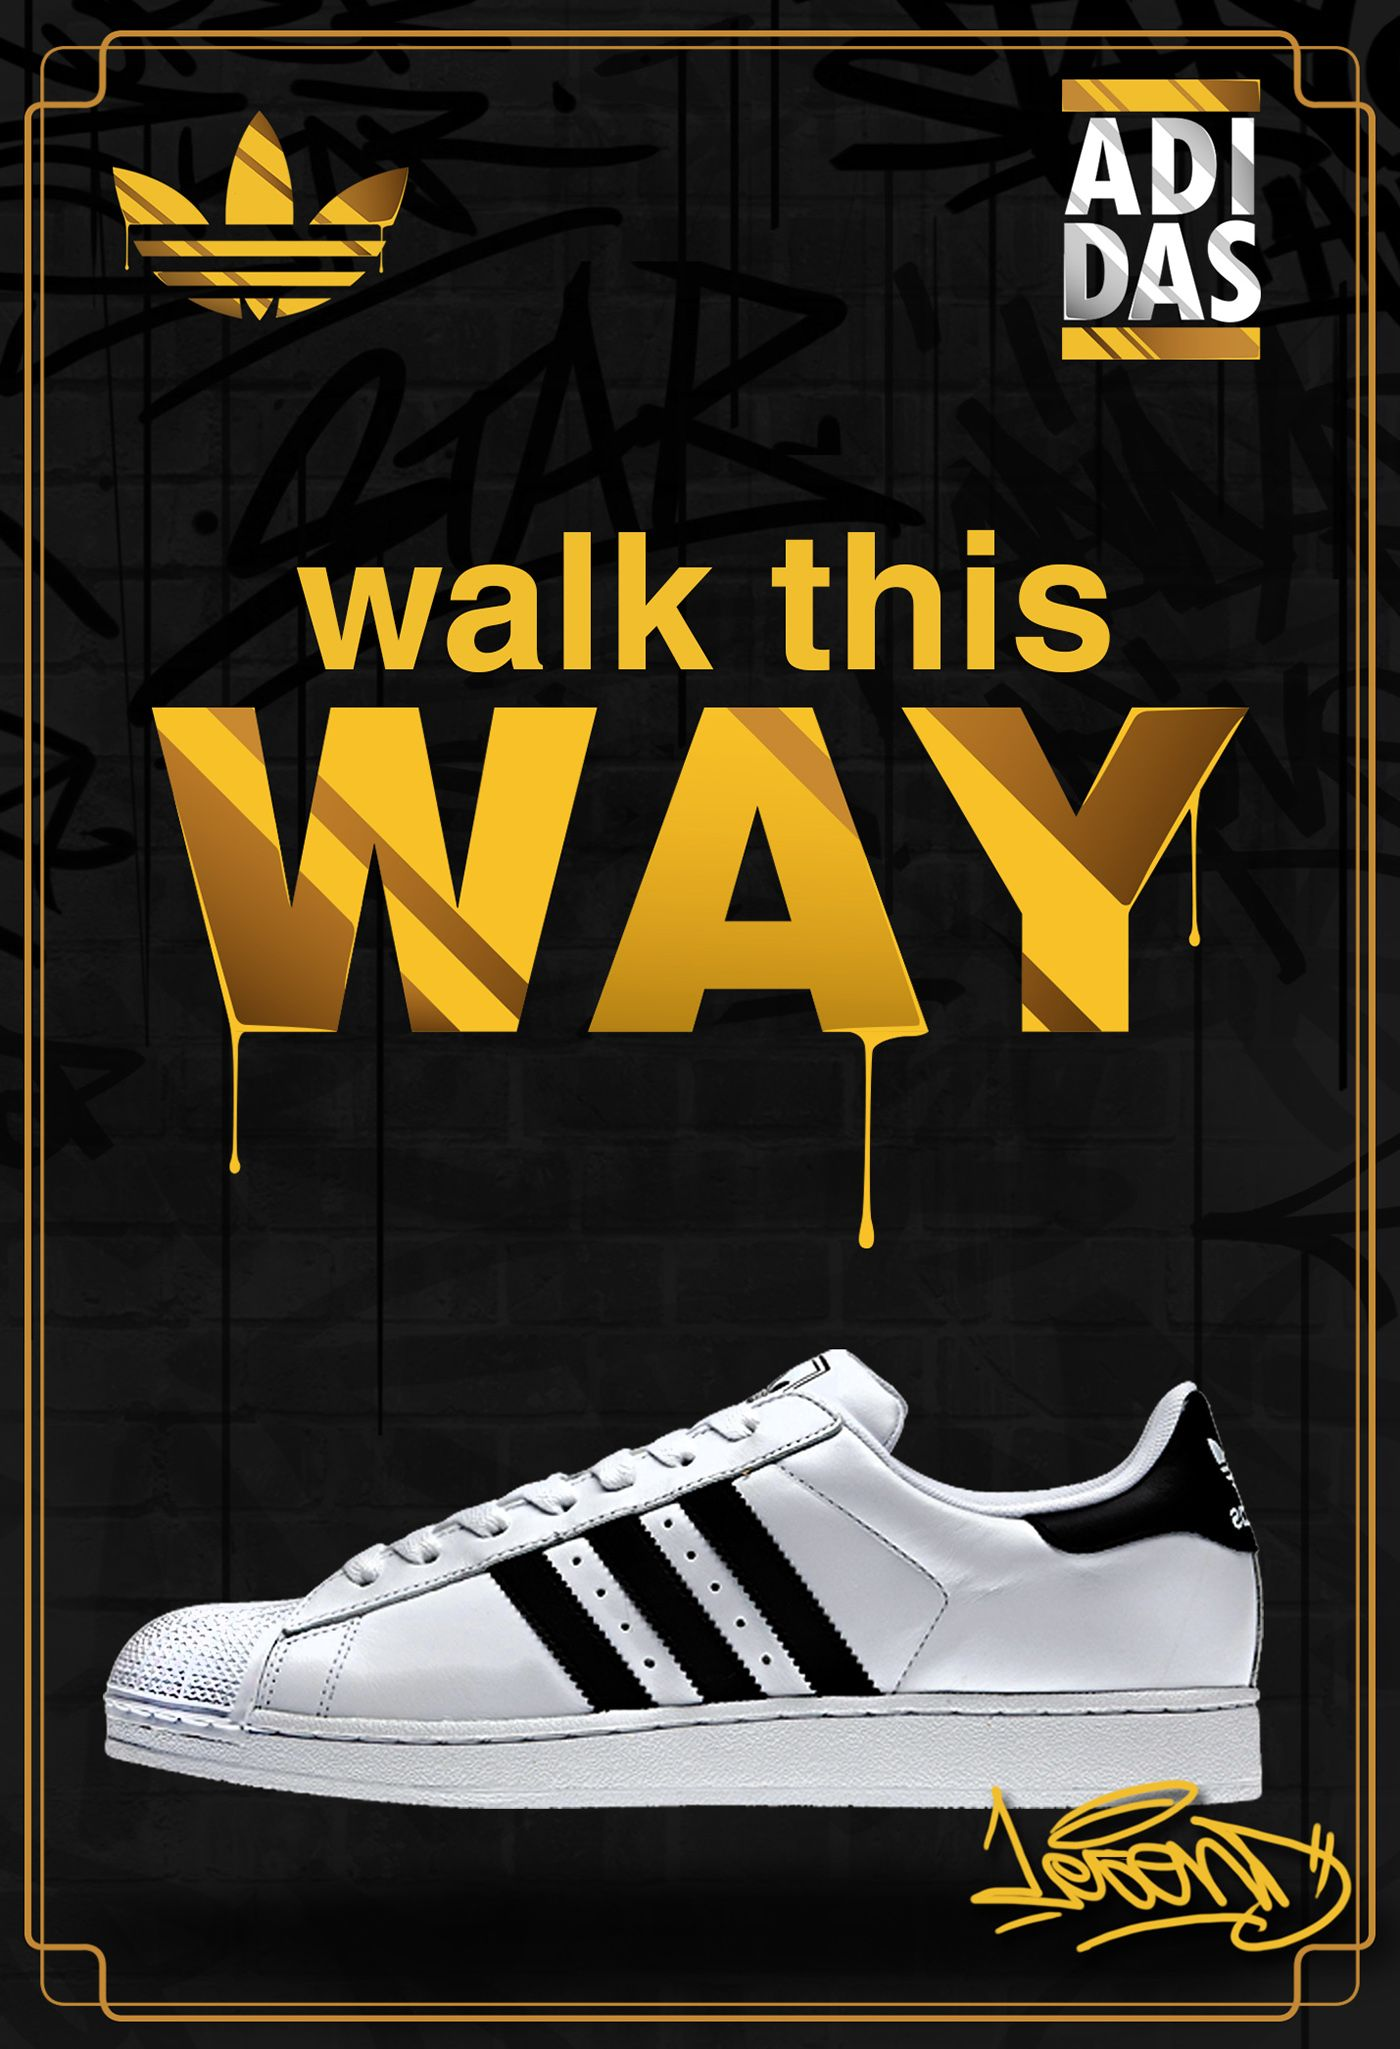 lowest price c2ff7 3a12a ADIDAS SuperStar   RUN DMC on Behance